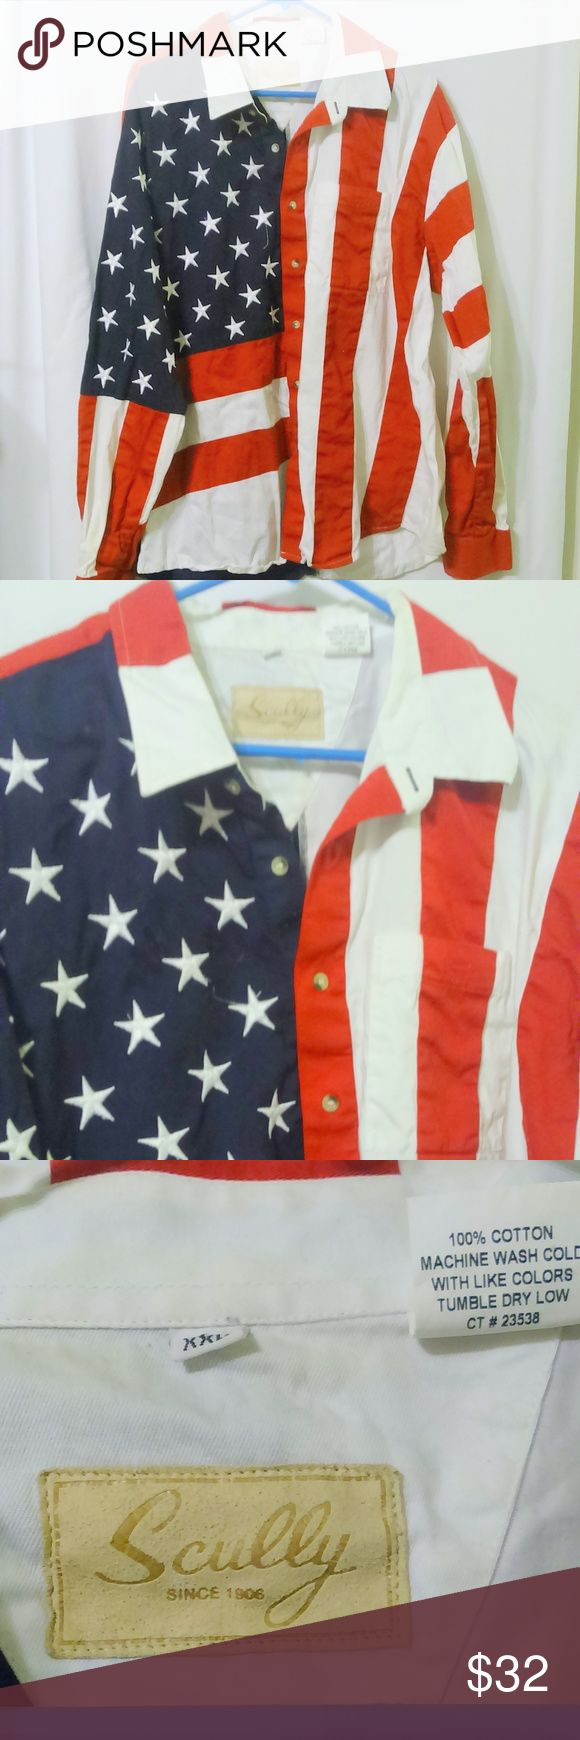 "SCULLY Men's American Flag USA Button Front Shirt This men's western style American Flag shirt is made by Scully and is a size XXL. The shirt is done in a 100% cotton. Measurements are: Chest 56"", sleeves 26"", length 32"". In great condition! Scully Shirts Casual Button Down Shirts"